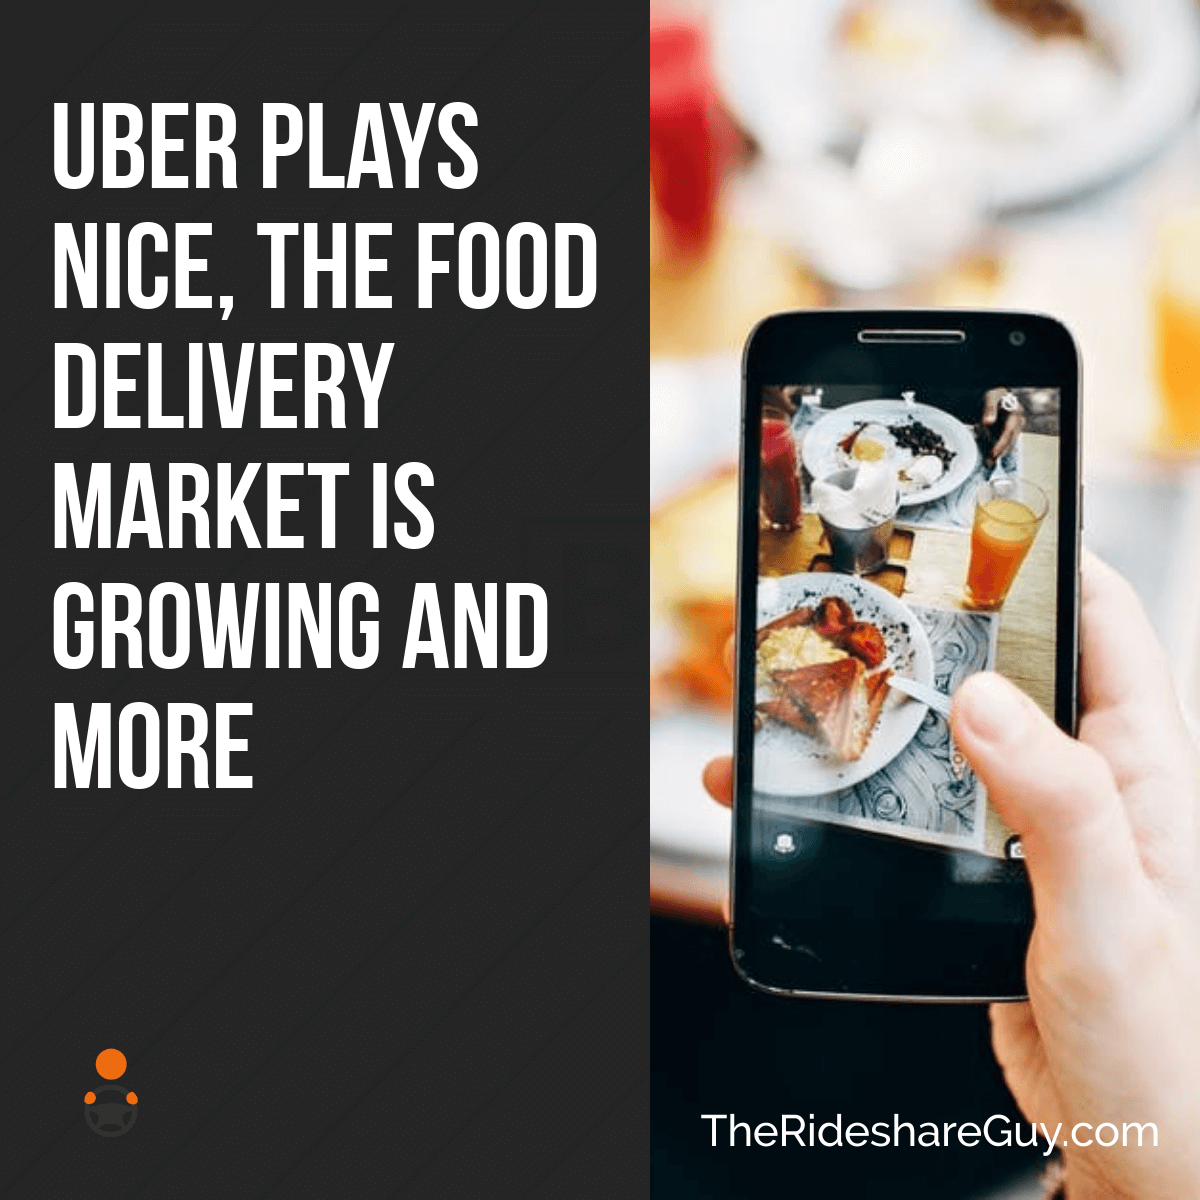 Lots to cover this week, including two articles on food! Senior RSG contributor John Ince covers a scary altercation with a passenger, highlighting a major problem with rideshare, plus how Uber is playing nice with cities and how the food delivery market continues to grow.